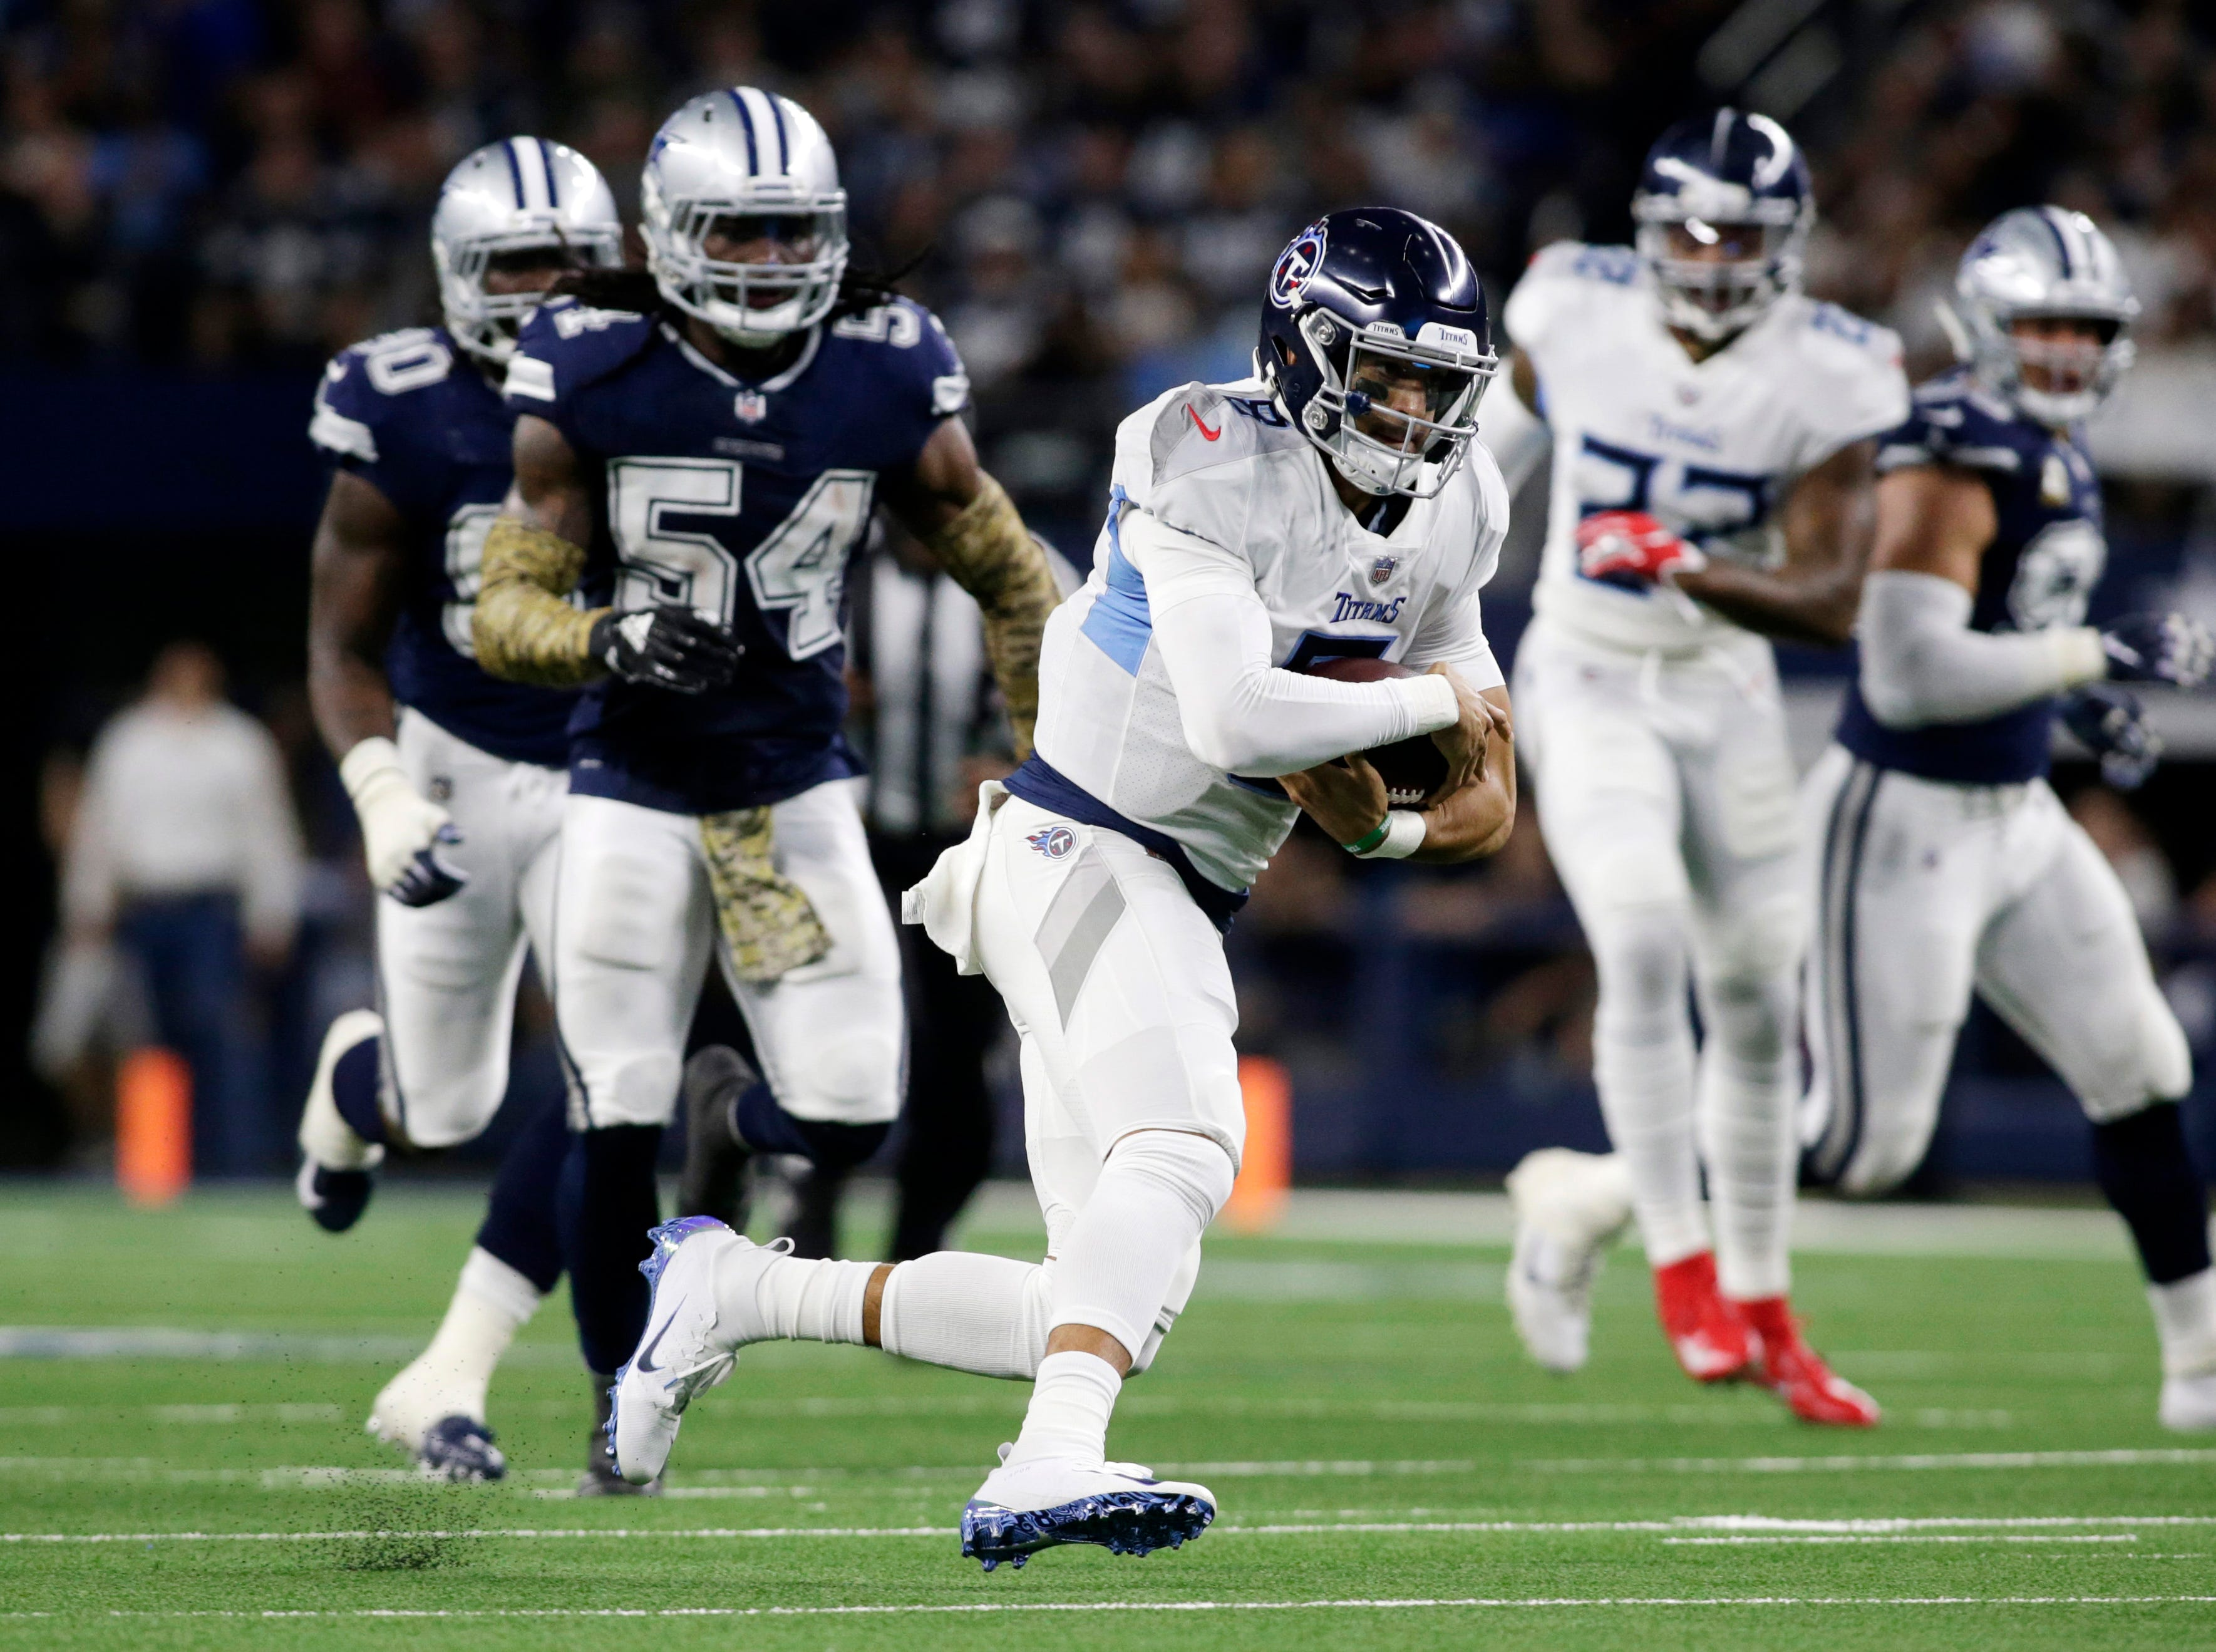 Nov 5, 2018; Arlington, TX, USA; Tennessee Titans quarterback Marcus Mariota (8) runs against the Dallas Cowboys in the second quarter at AT&T Stadium.